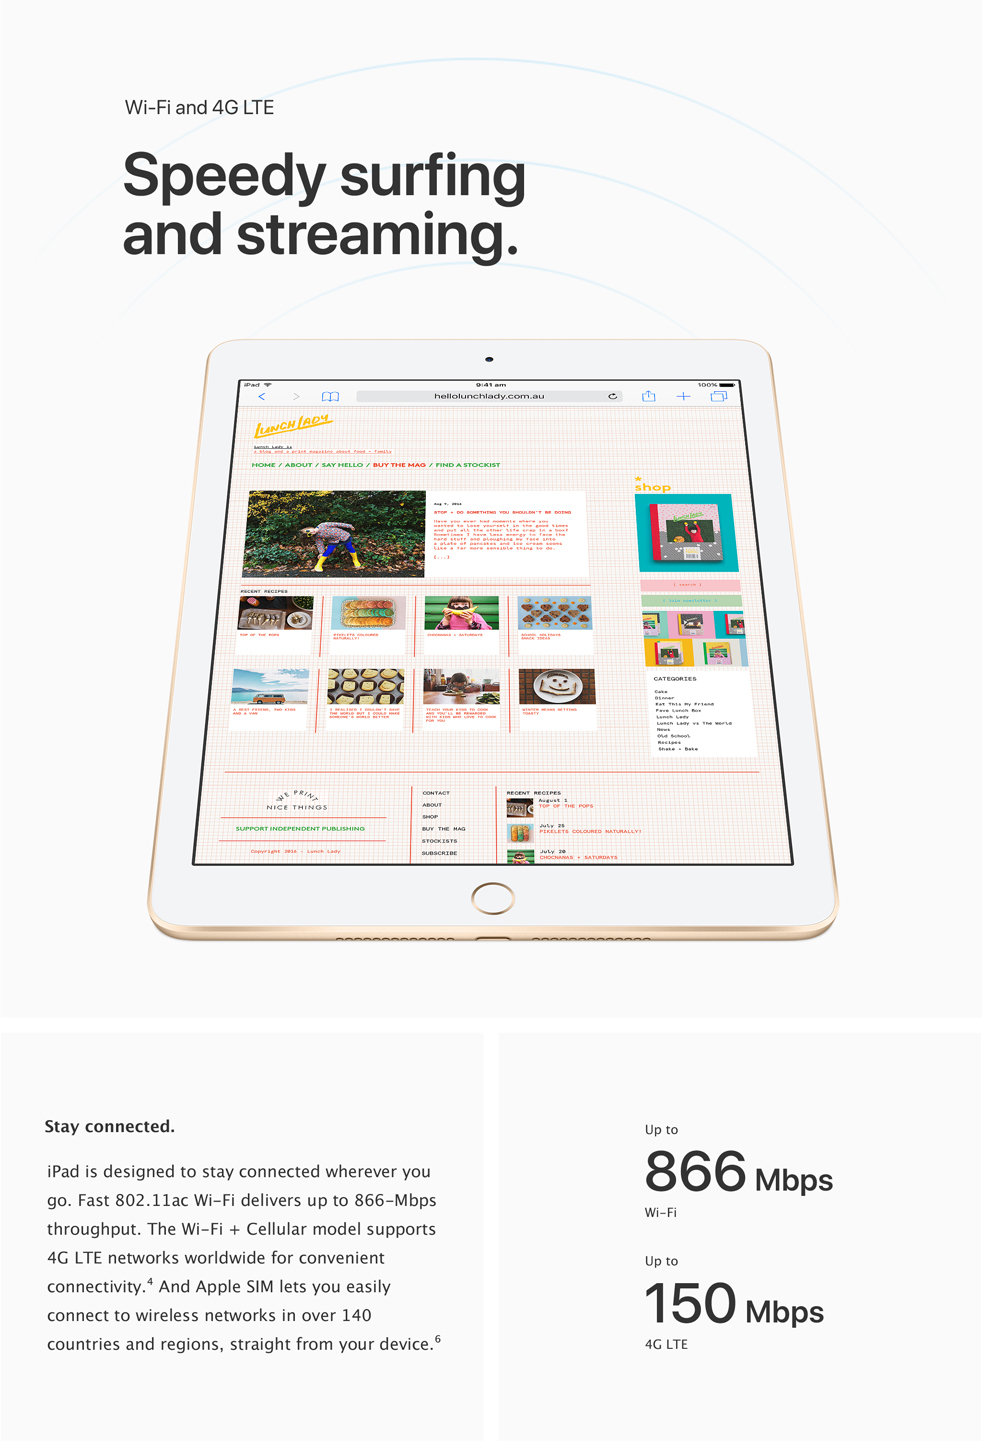 iPad - Speedy surfing and streaming.